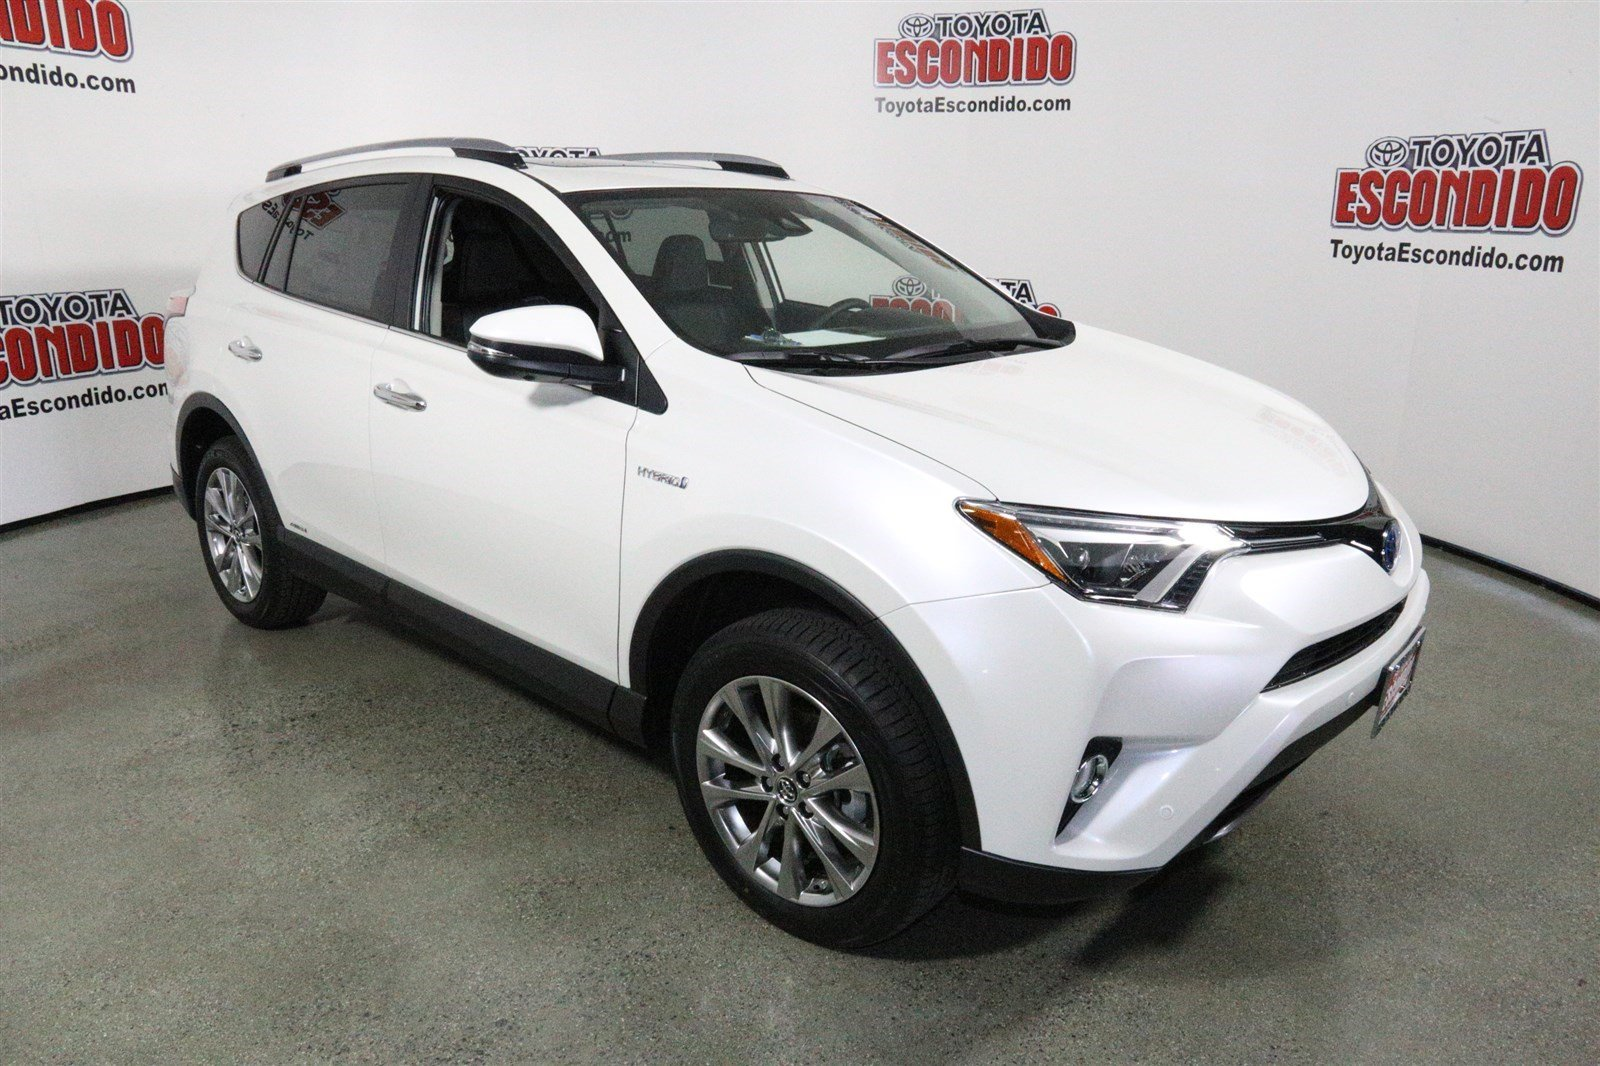 new 2017 toyota rav4 hybrid limited sport utility in escondido 1014215 toyota of escondido. Black Bedroom Furniture Sets. Home Design Ideas